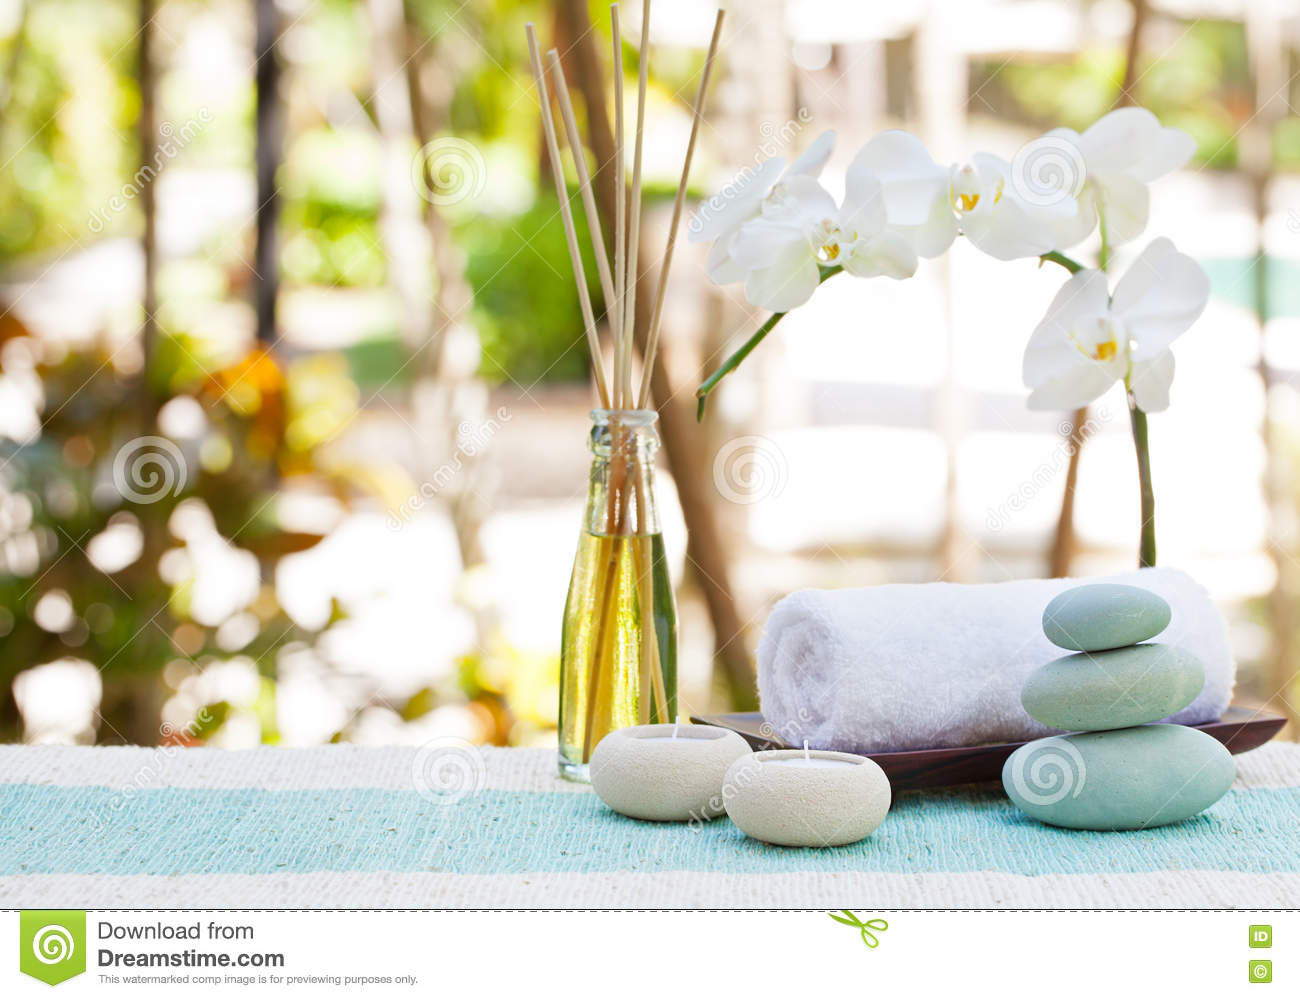 Spa And Wellness Massage Setting Still Life With Candle, Towel And ...